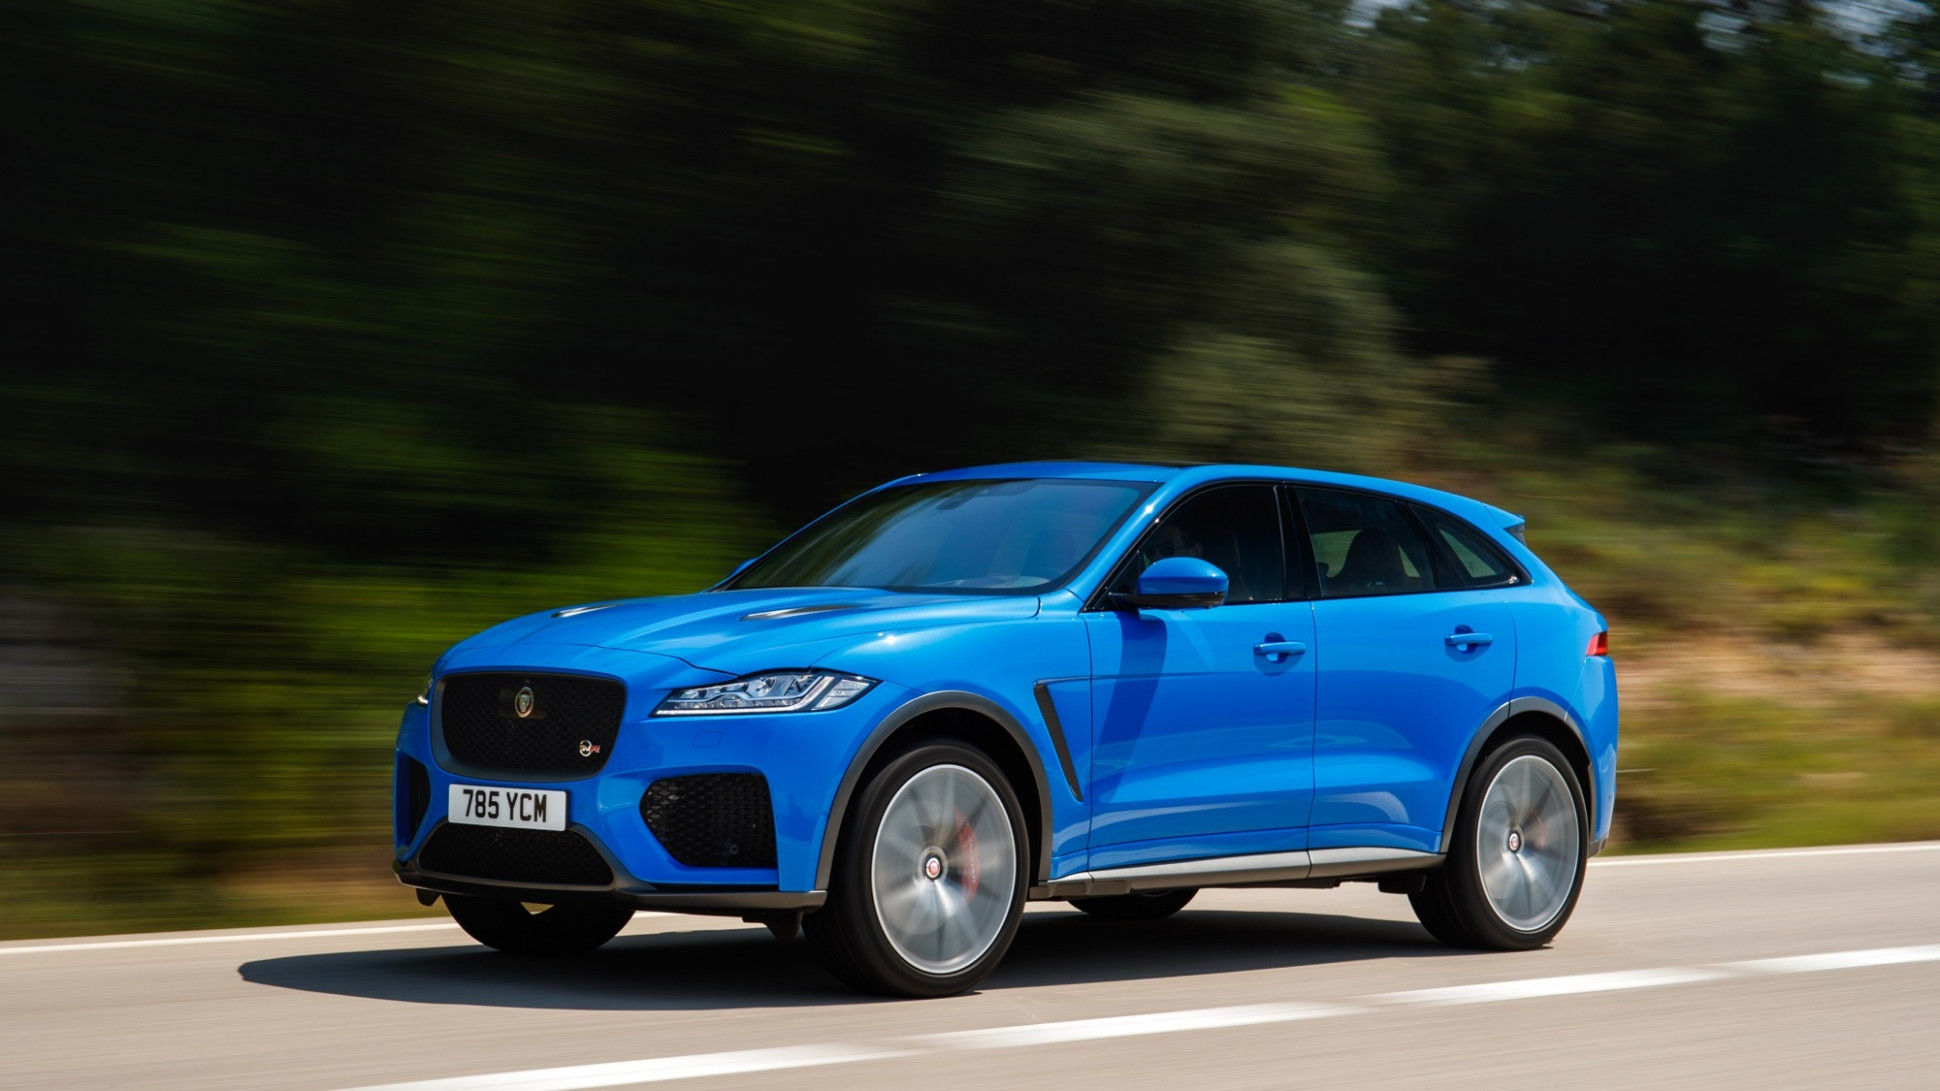 11 Jaguar F-Pace SVR First Drive Review | What's new, specs ...